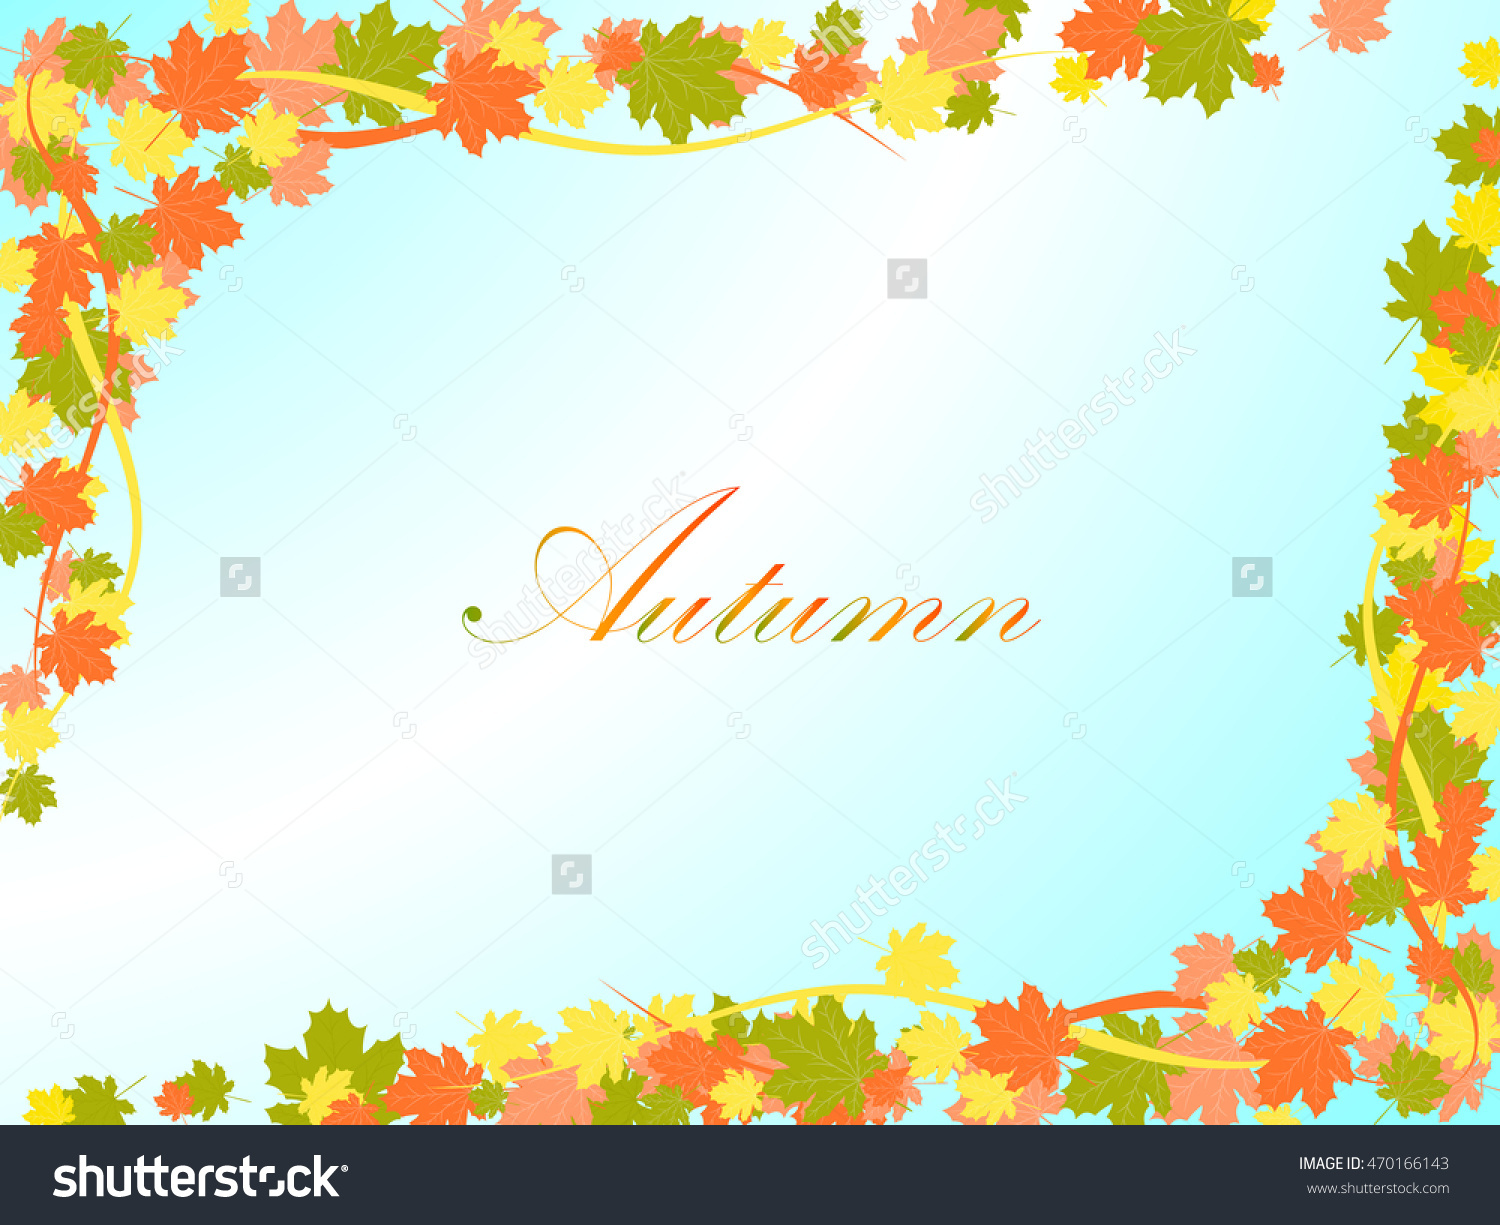 Autumn Light Blue Background With Colorful Maple Leaves And Lines.